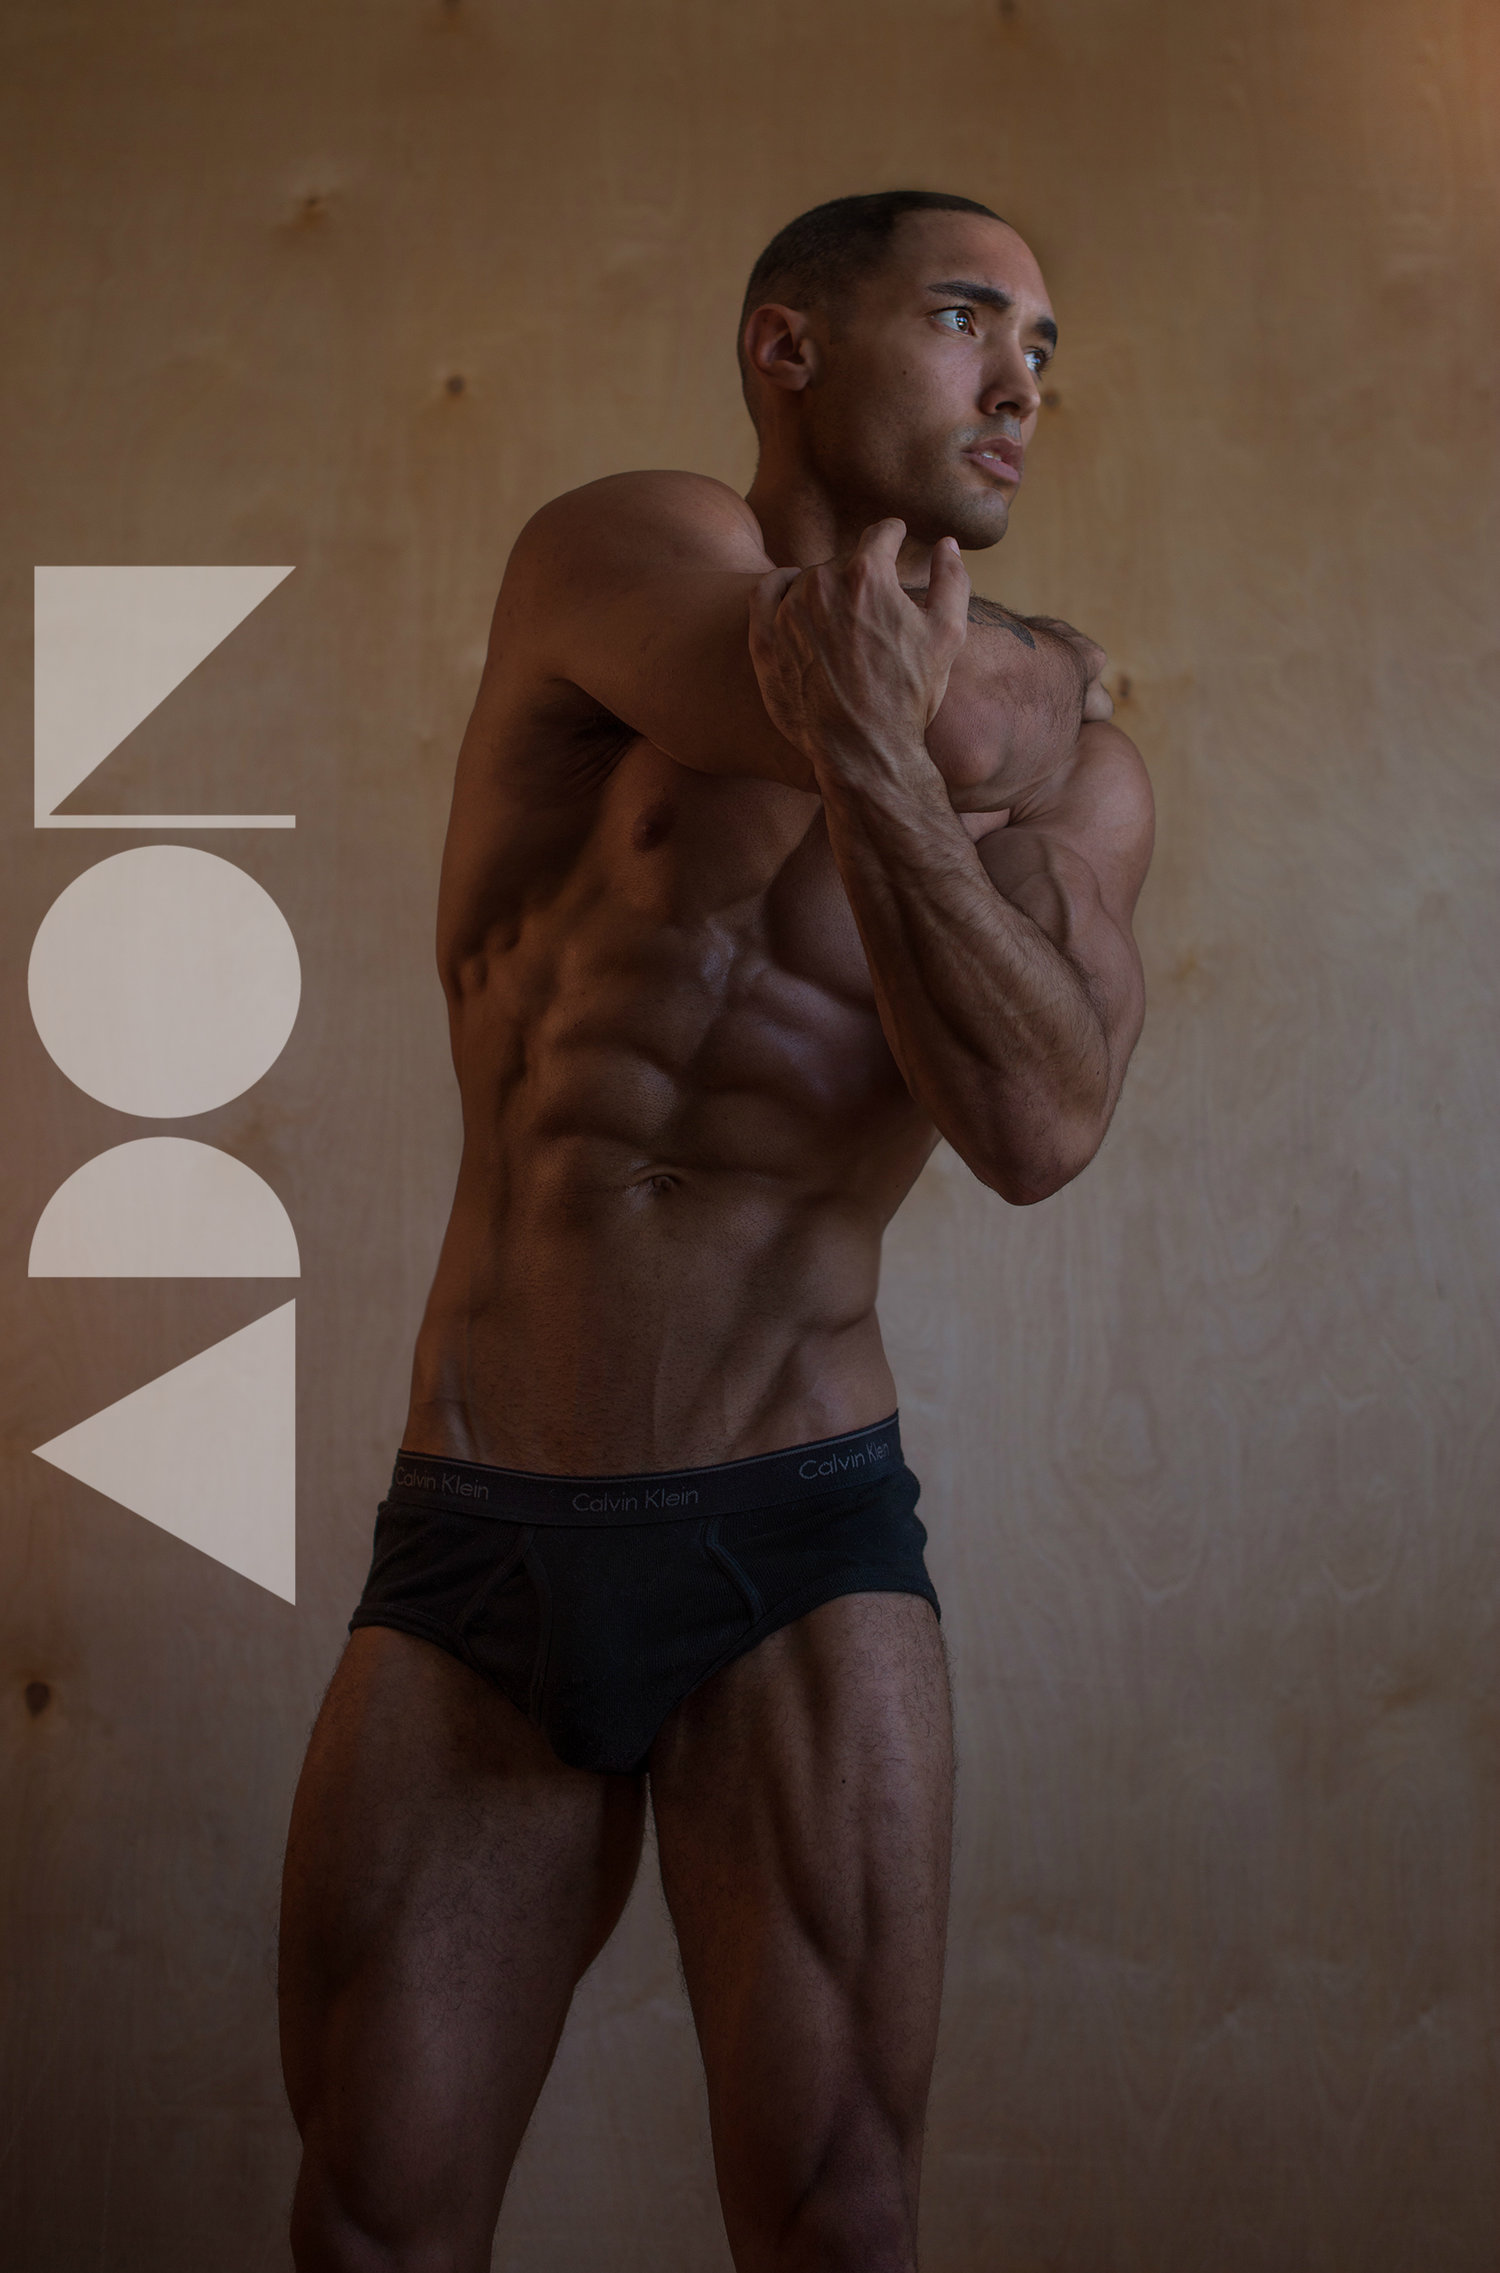 Adon Exclusive: Model Jason Fackelmayer By Frank Marando